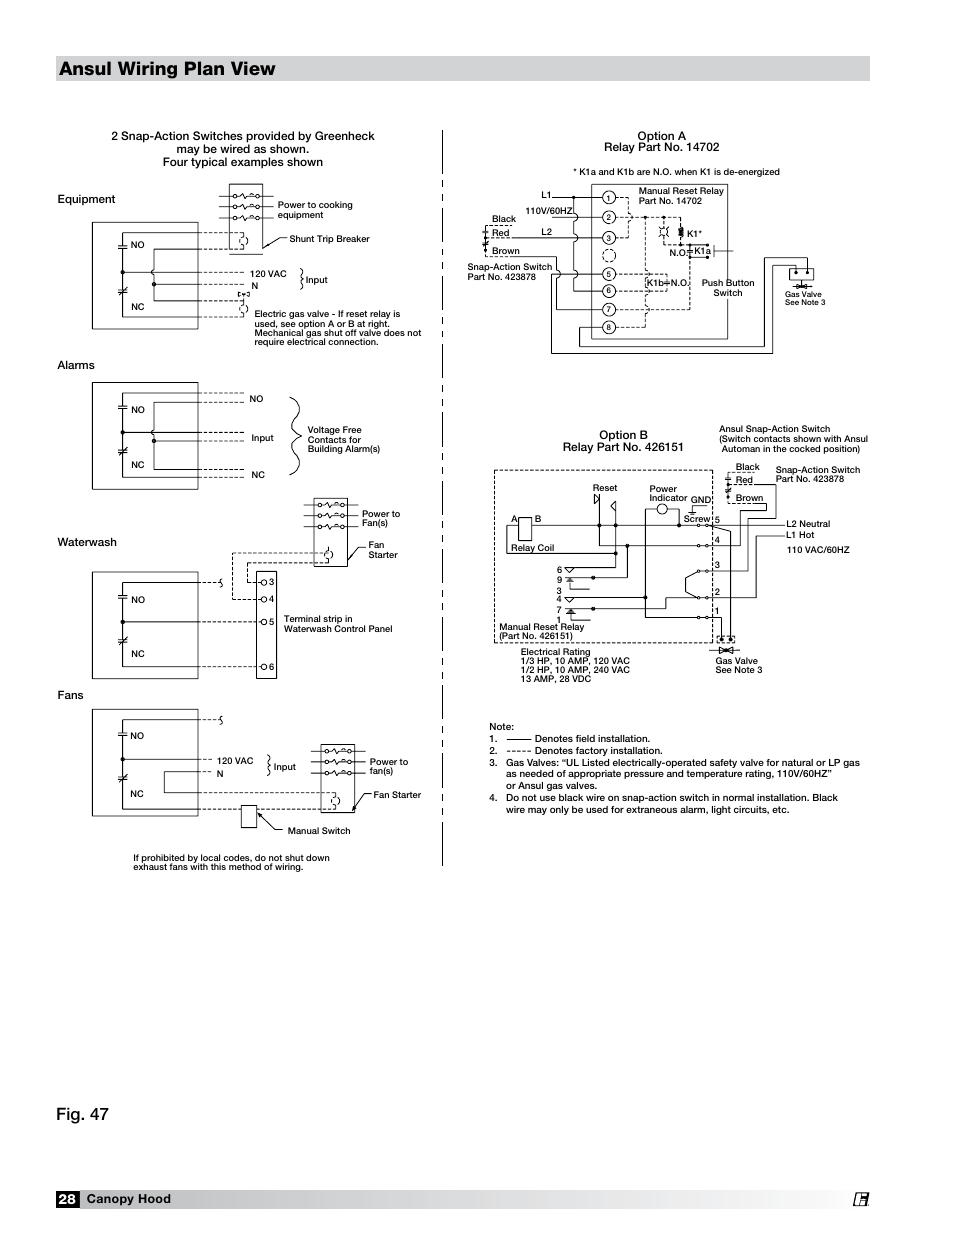 Wiring Diagram Vent Hood How To Read Auto Diagrams Clivus Ansul System Generous Images Electrical And Greenheck Fan 452413 Page28